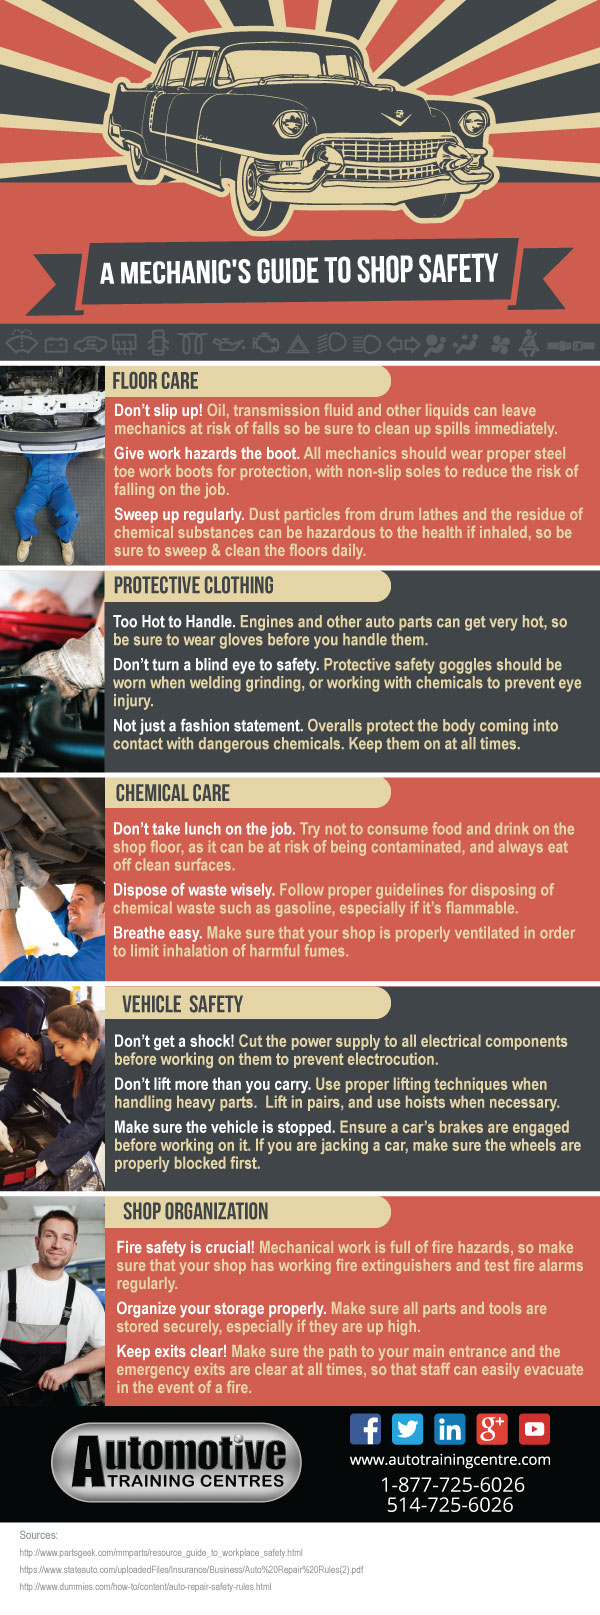 Infographic: A Mechanic's Guide to Shop Safety, auto repair safety rules, car safety, home safety, workplace safety, safety at work, vehicle safety